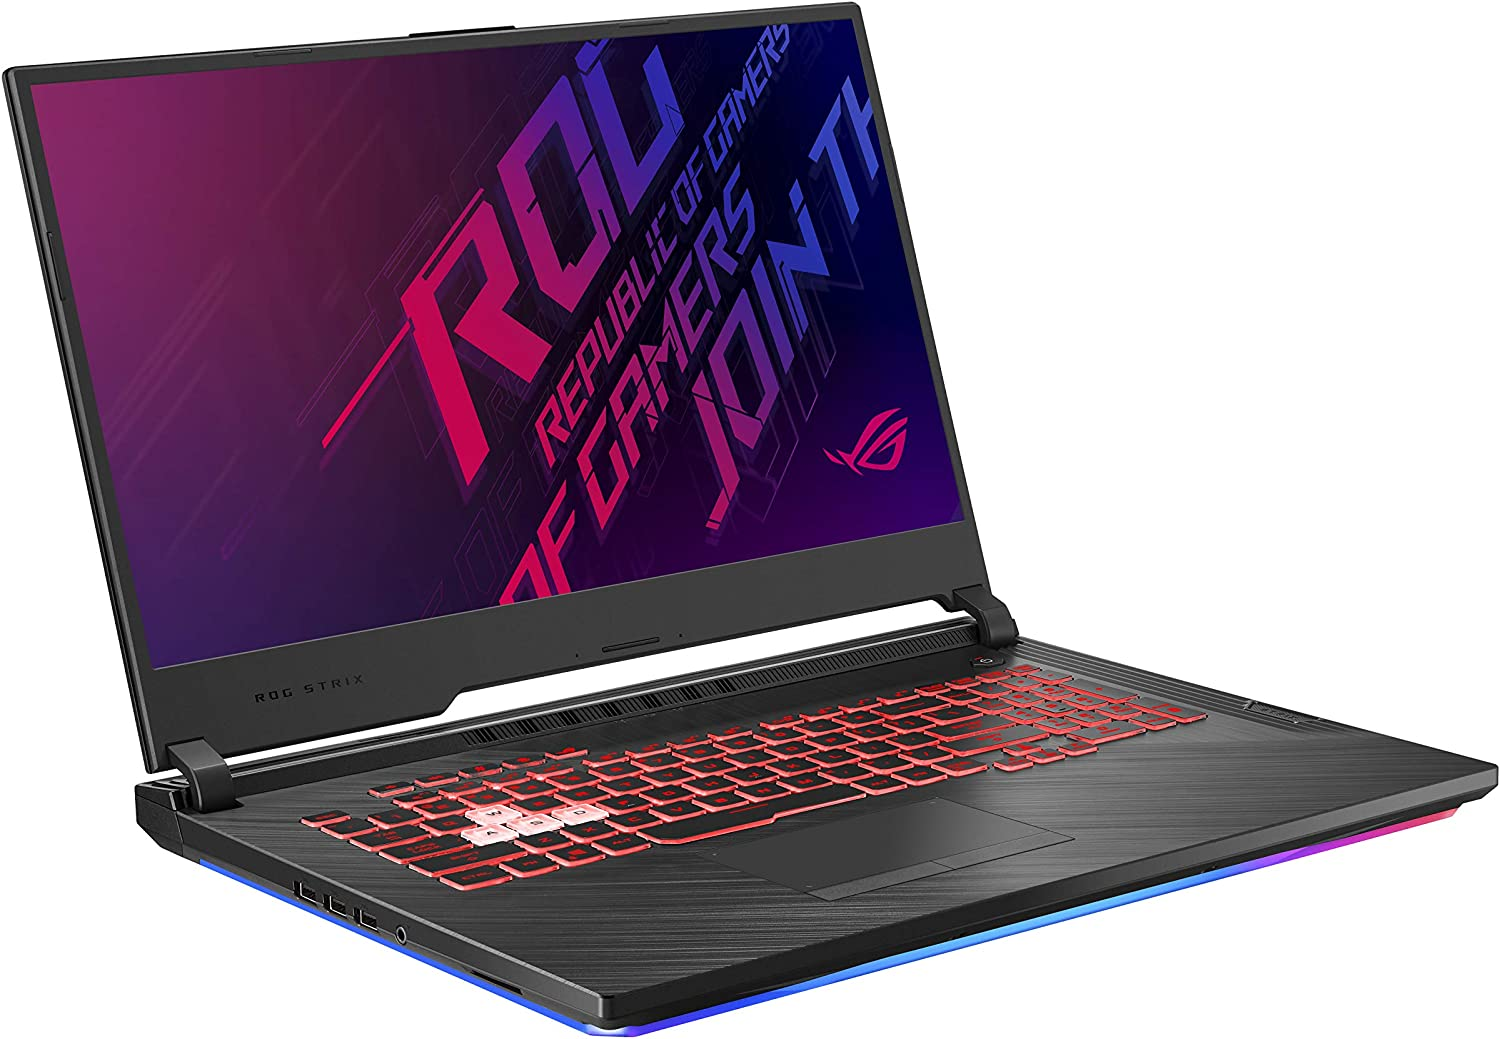 "Asus ROG Strix G (2019) Gaming Laptop, 17.3"" IPS Type FHD, NVIDIA GeForce GTX 1650, Intel Core i7-9750H, 16GB DDR4, 512GB PCIe Nvme SSD, RGB KB, Windows 10 Home, GL731GT-PH74"